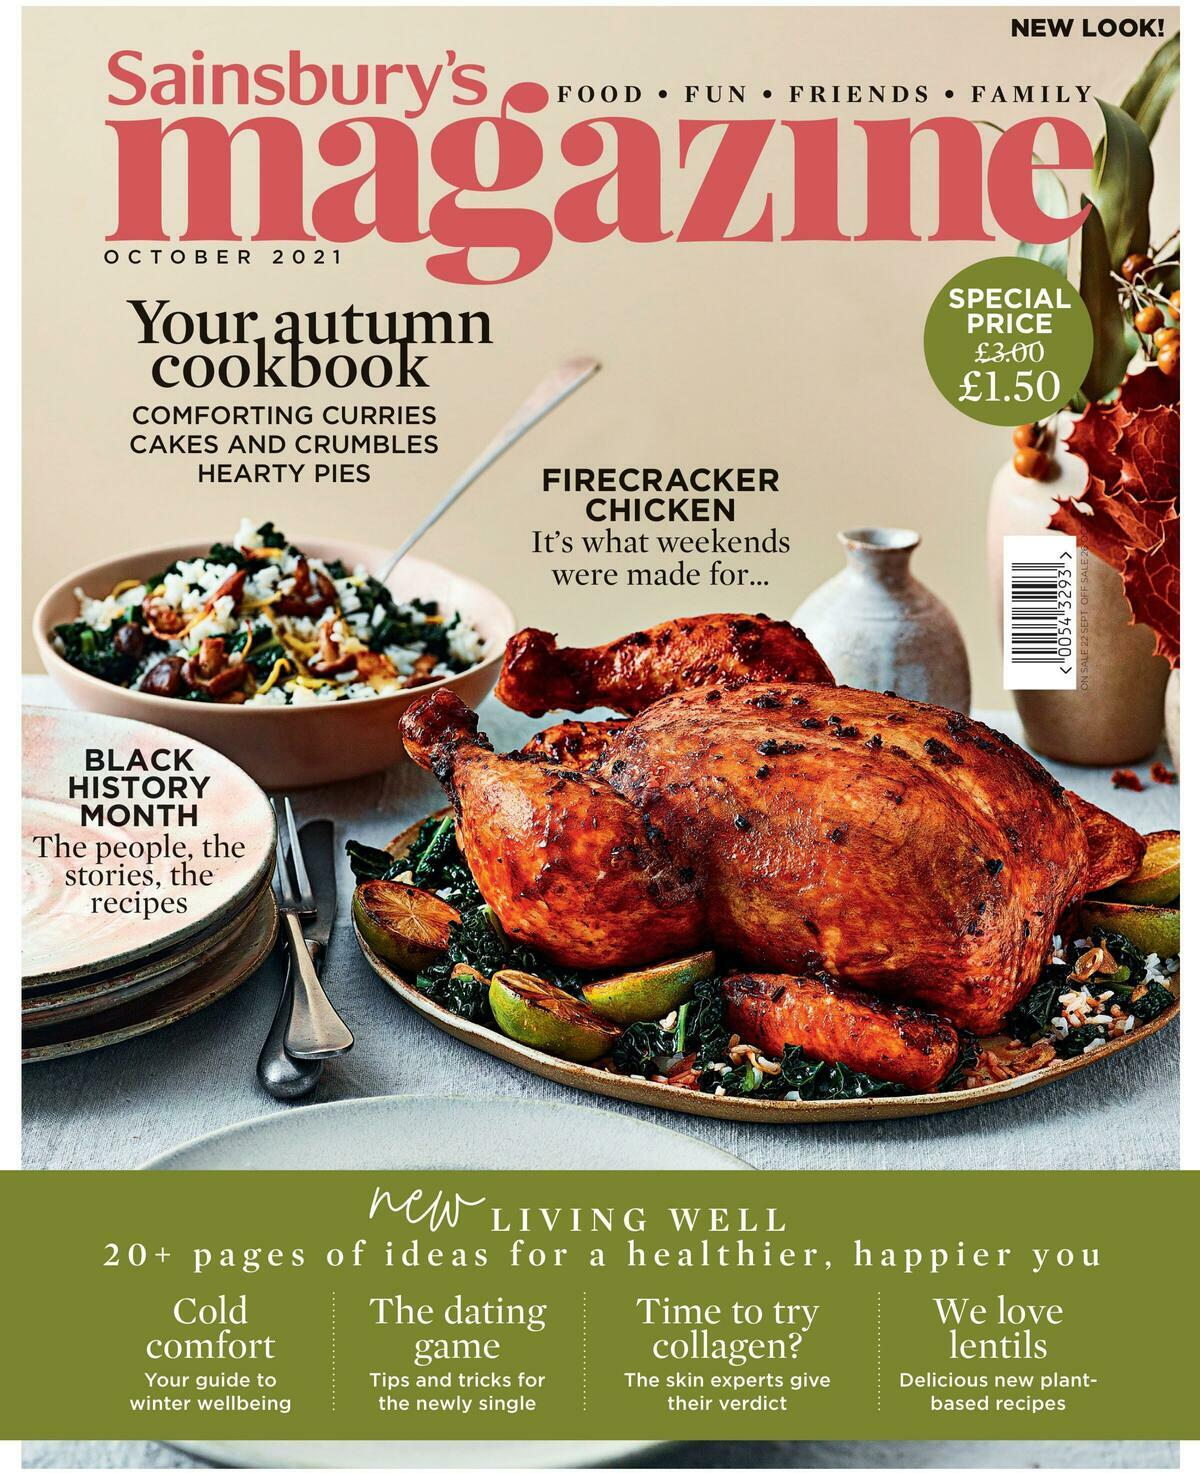 Sainsbury's Magazine October Offers from October 1